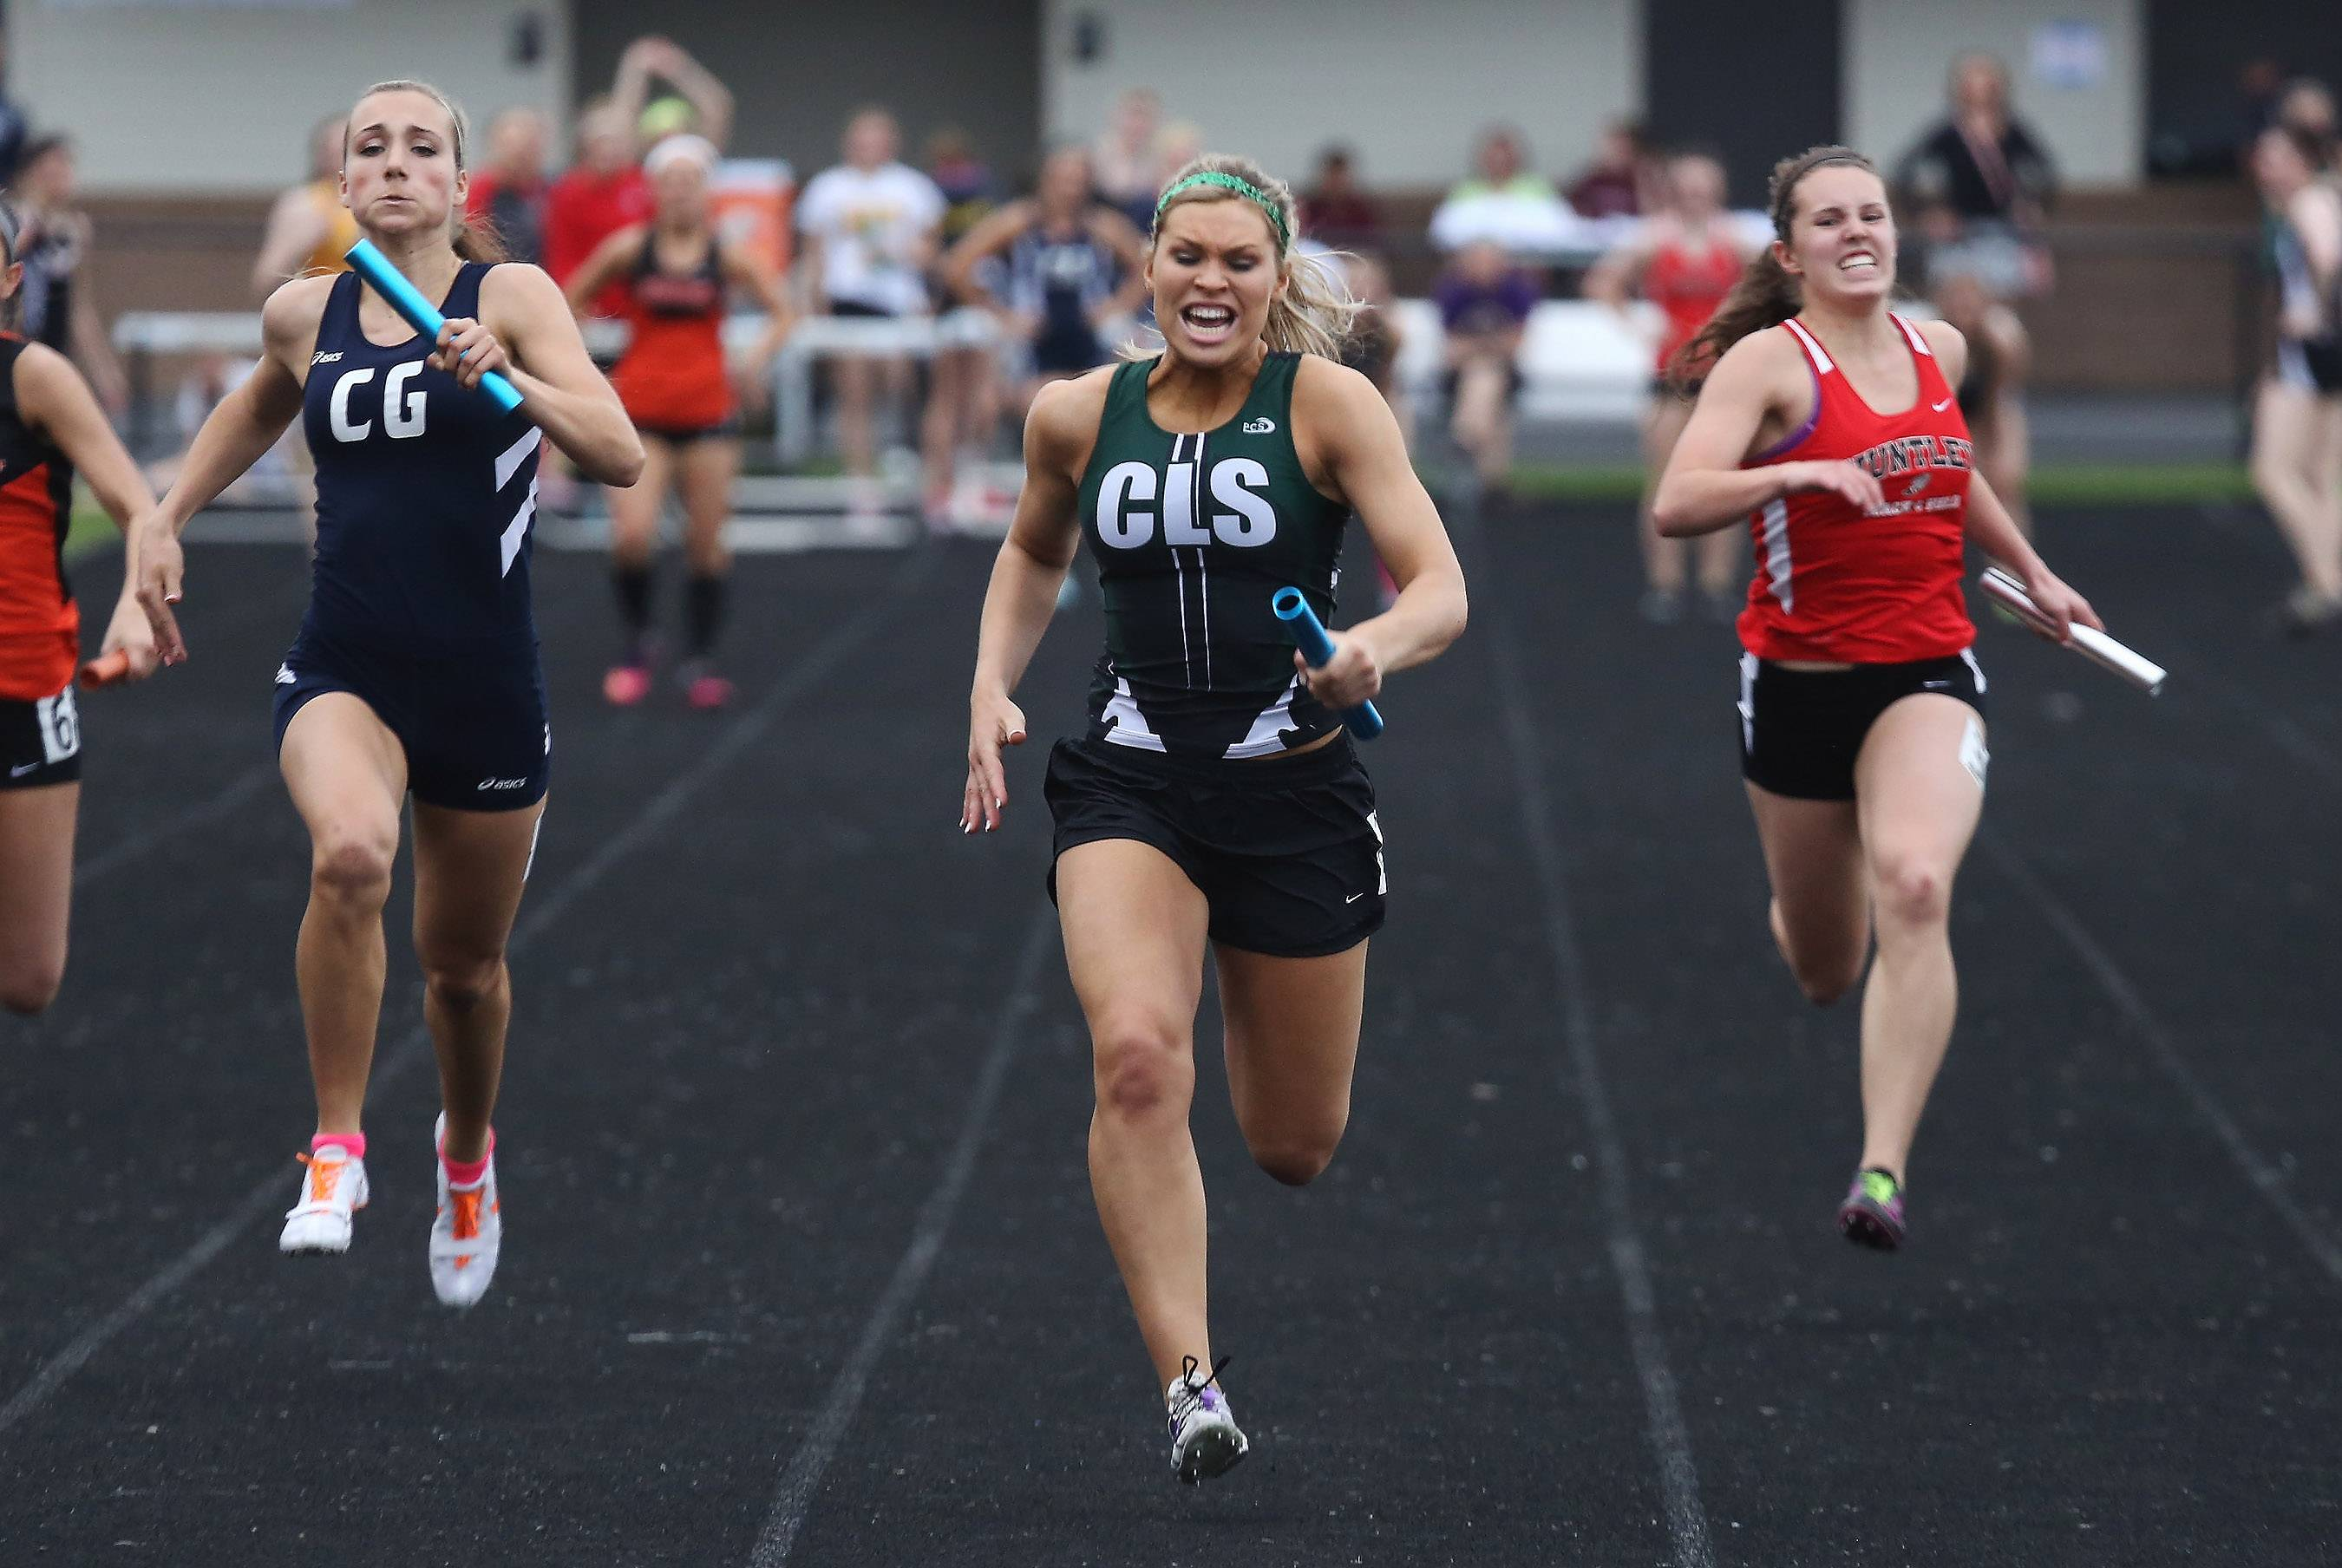 Taylor Schau of the Crystal Lake South team wins the 4x100 meter really during the Fox Valley Conference girls track meet. Eva Burke of Cary-Grove is left and Tina Driscoll of Huntley is right.